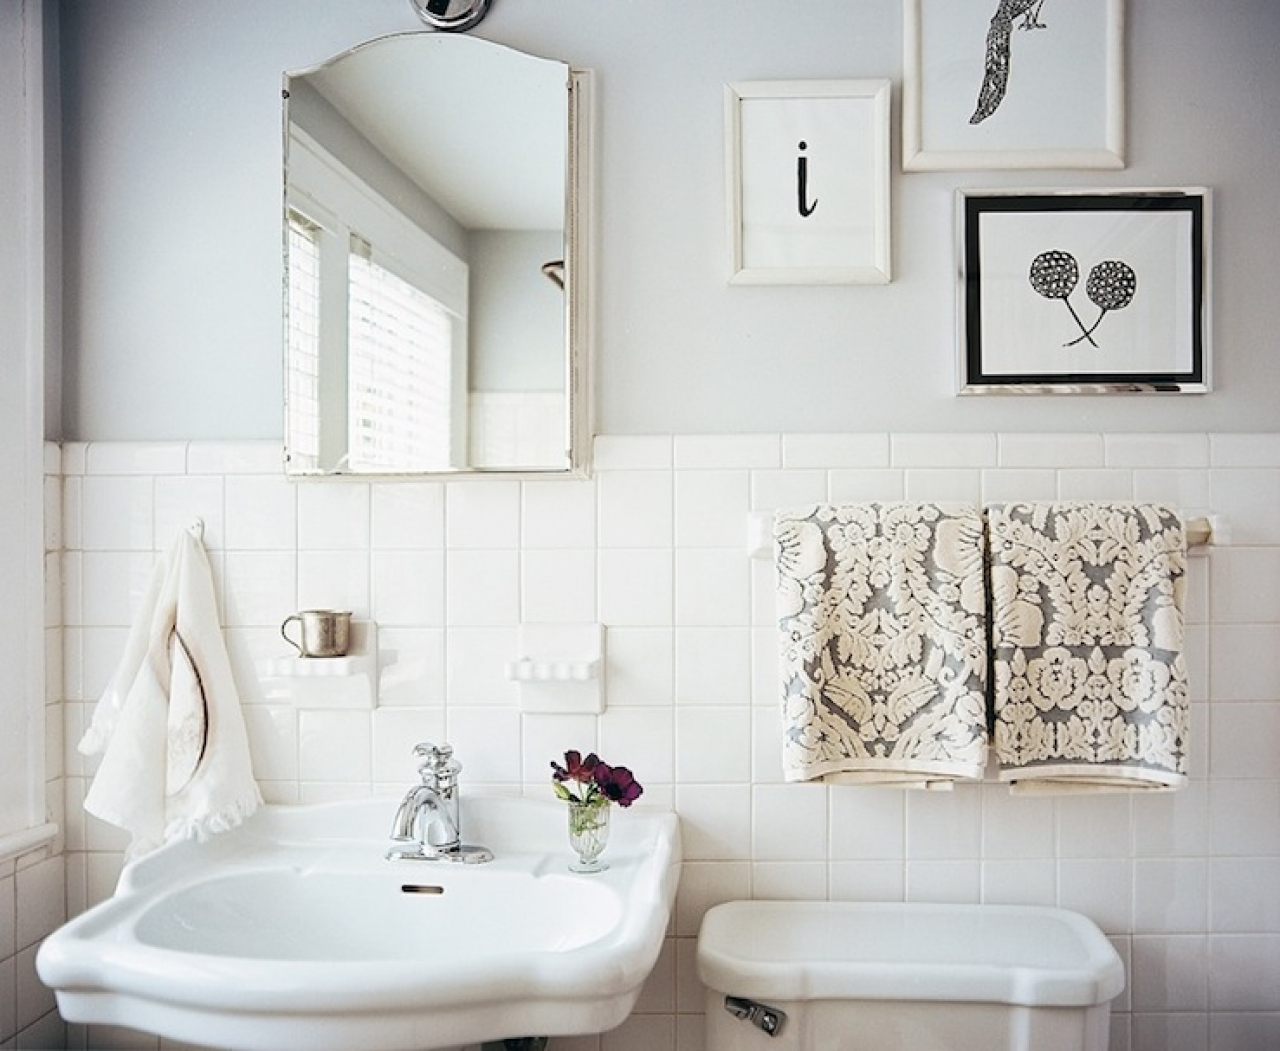 Black White And Grey Bathroom Ideas : Amazing pictures and ideas of old fashioned bathroom